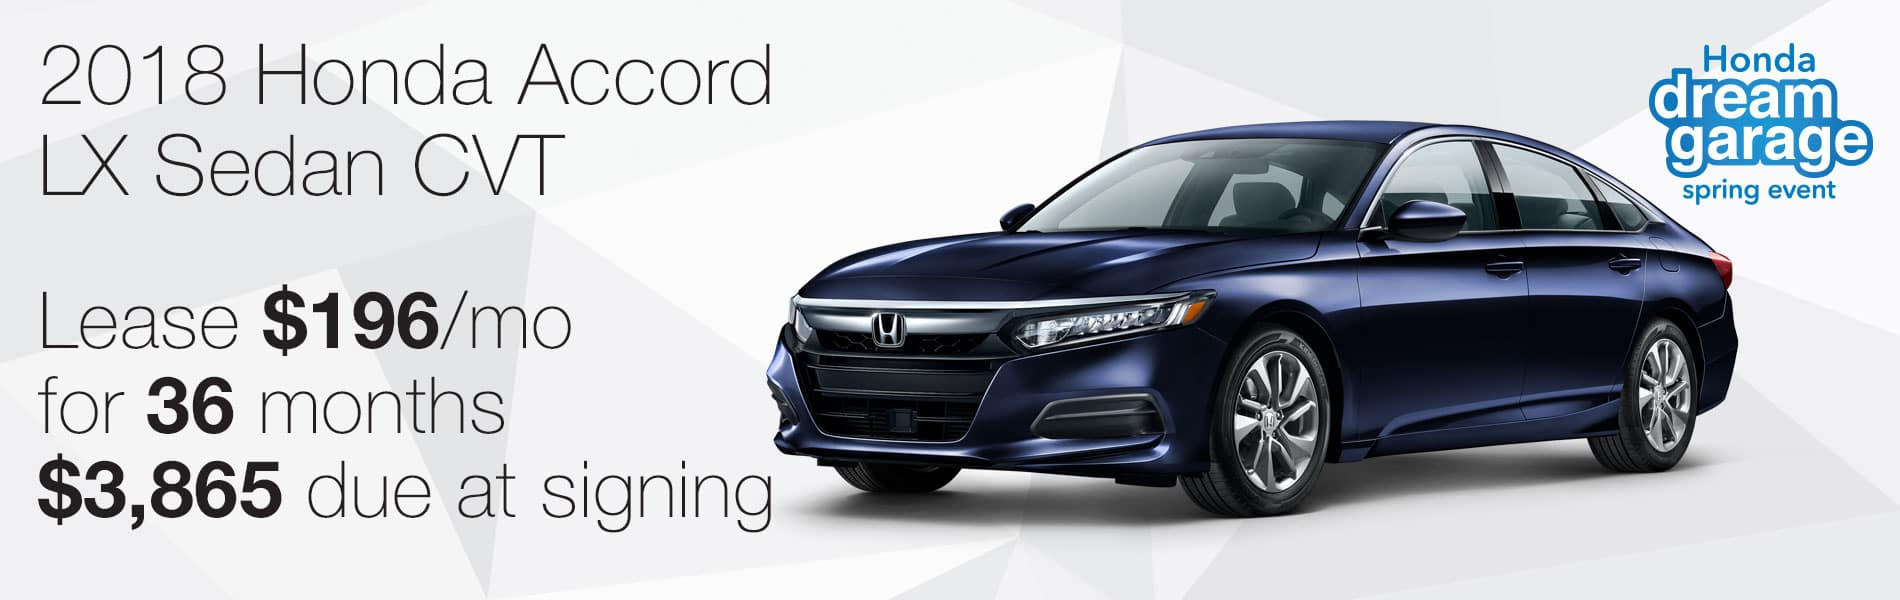 Lease a new 2018 Honda Accord Sedan for $196 per month with $3,865 due at signing